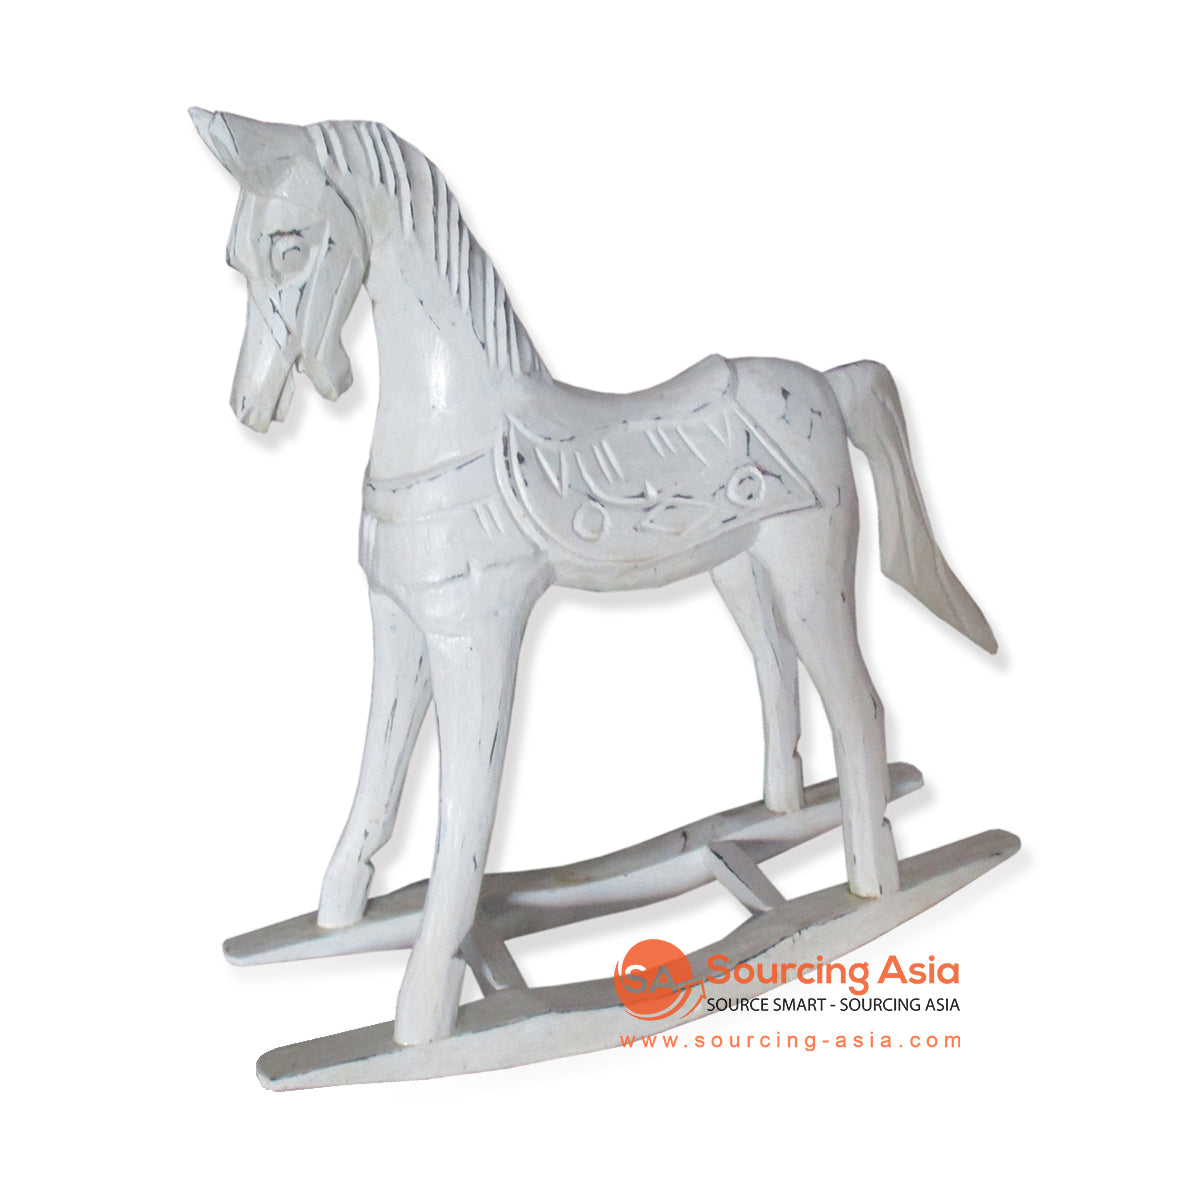 THE071-S HORSE STATUE